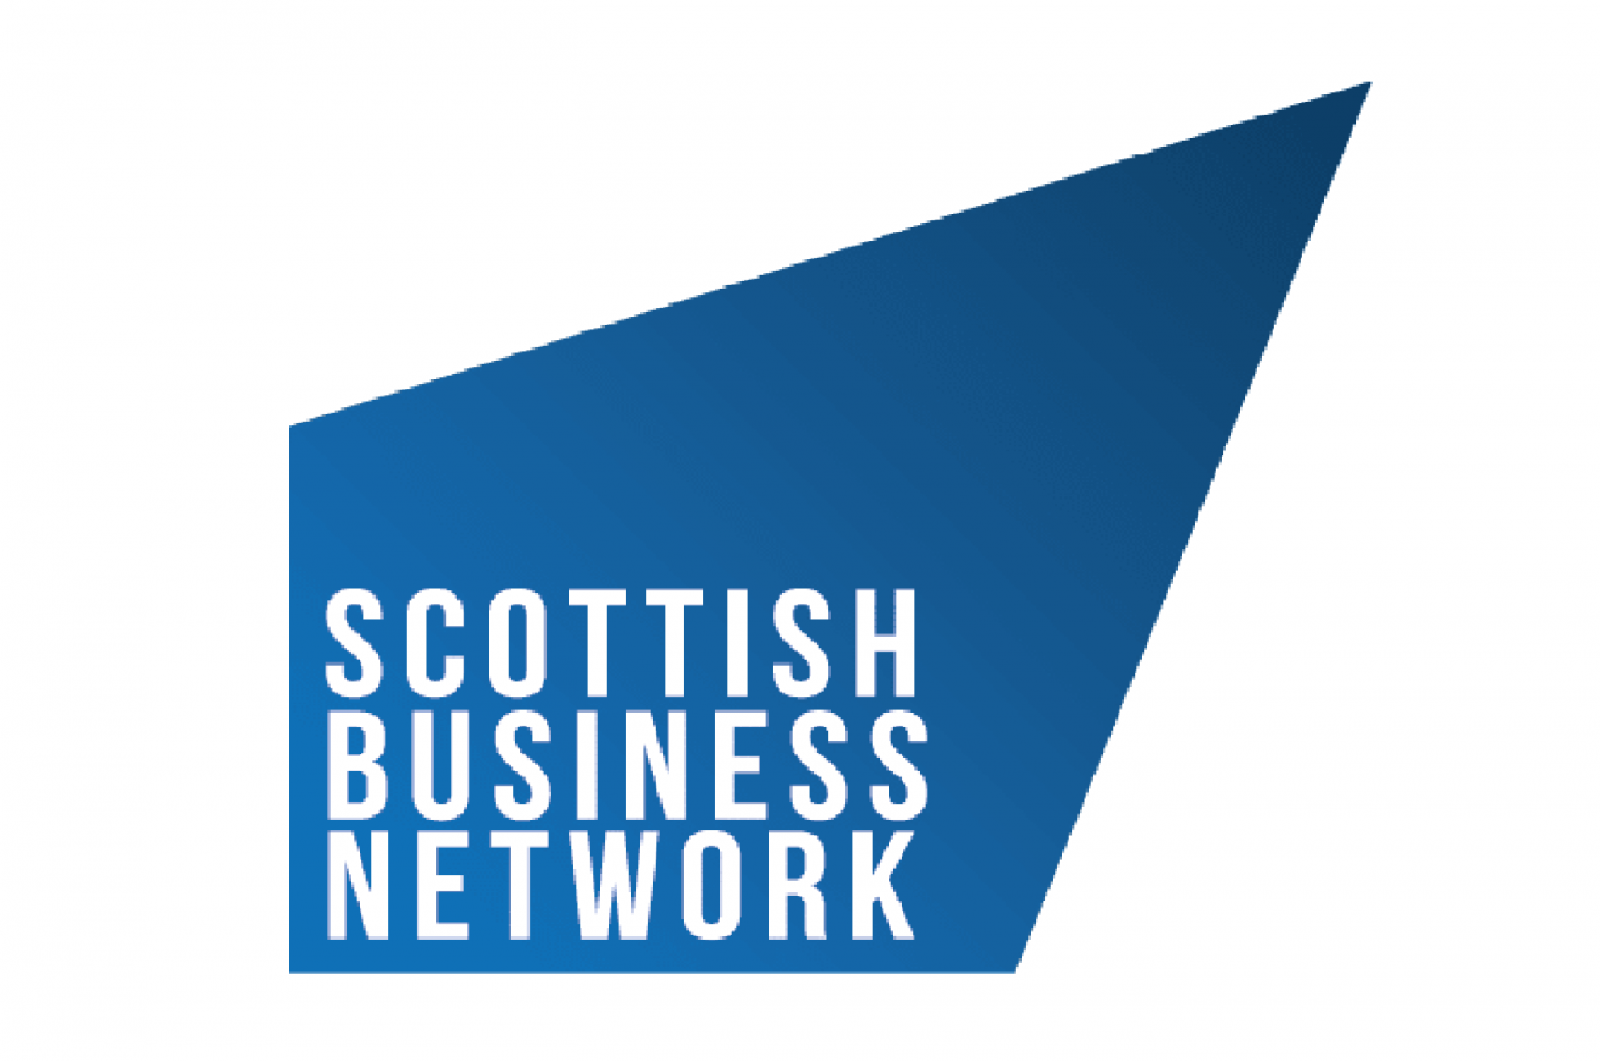 Scottish Business Network